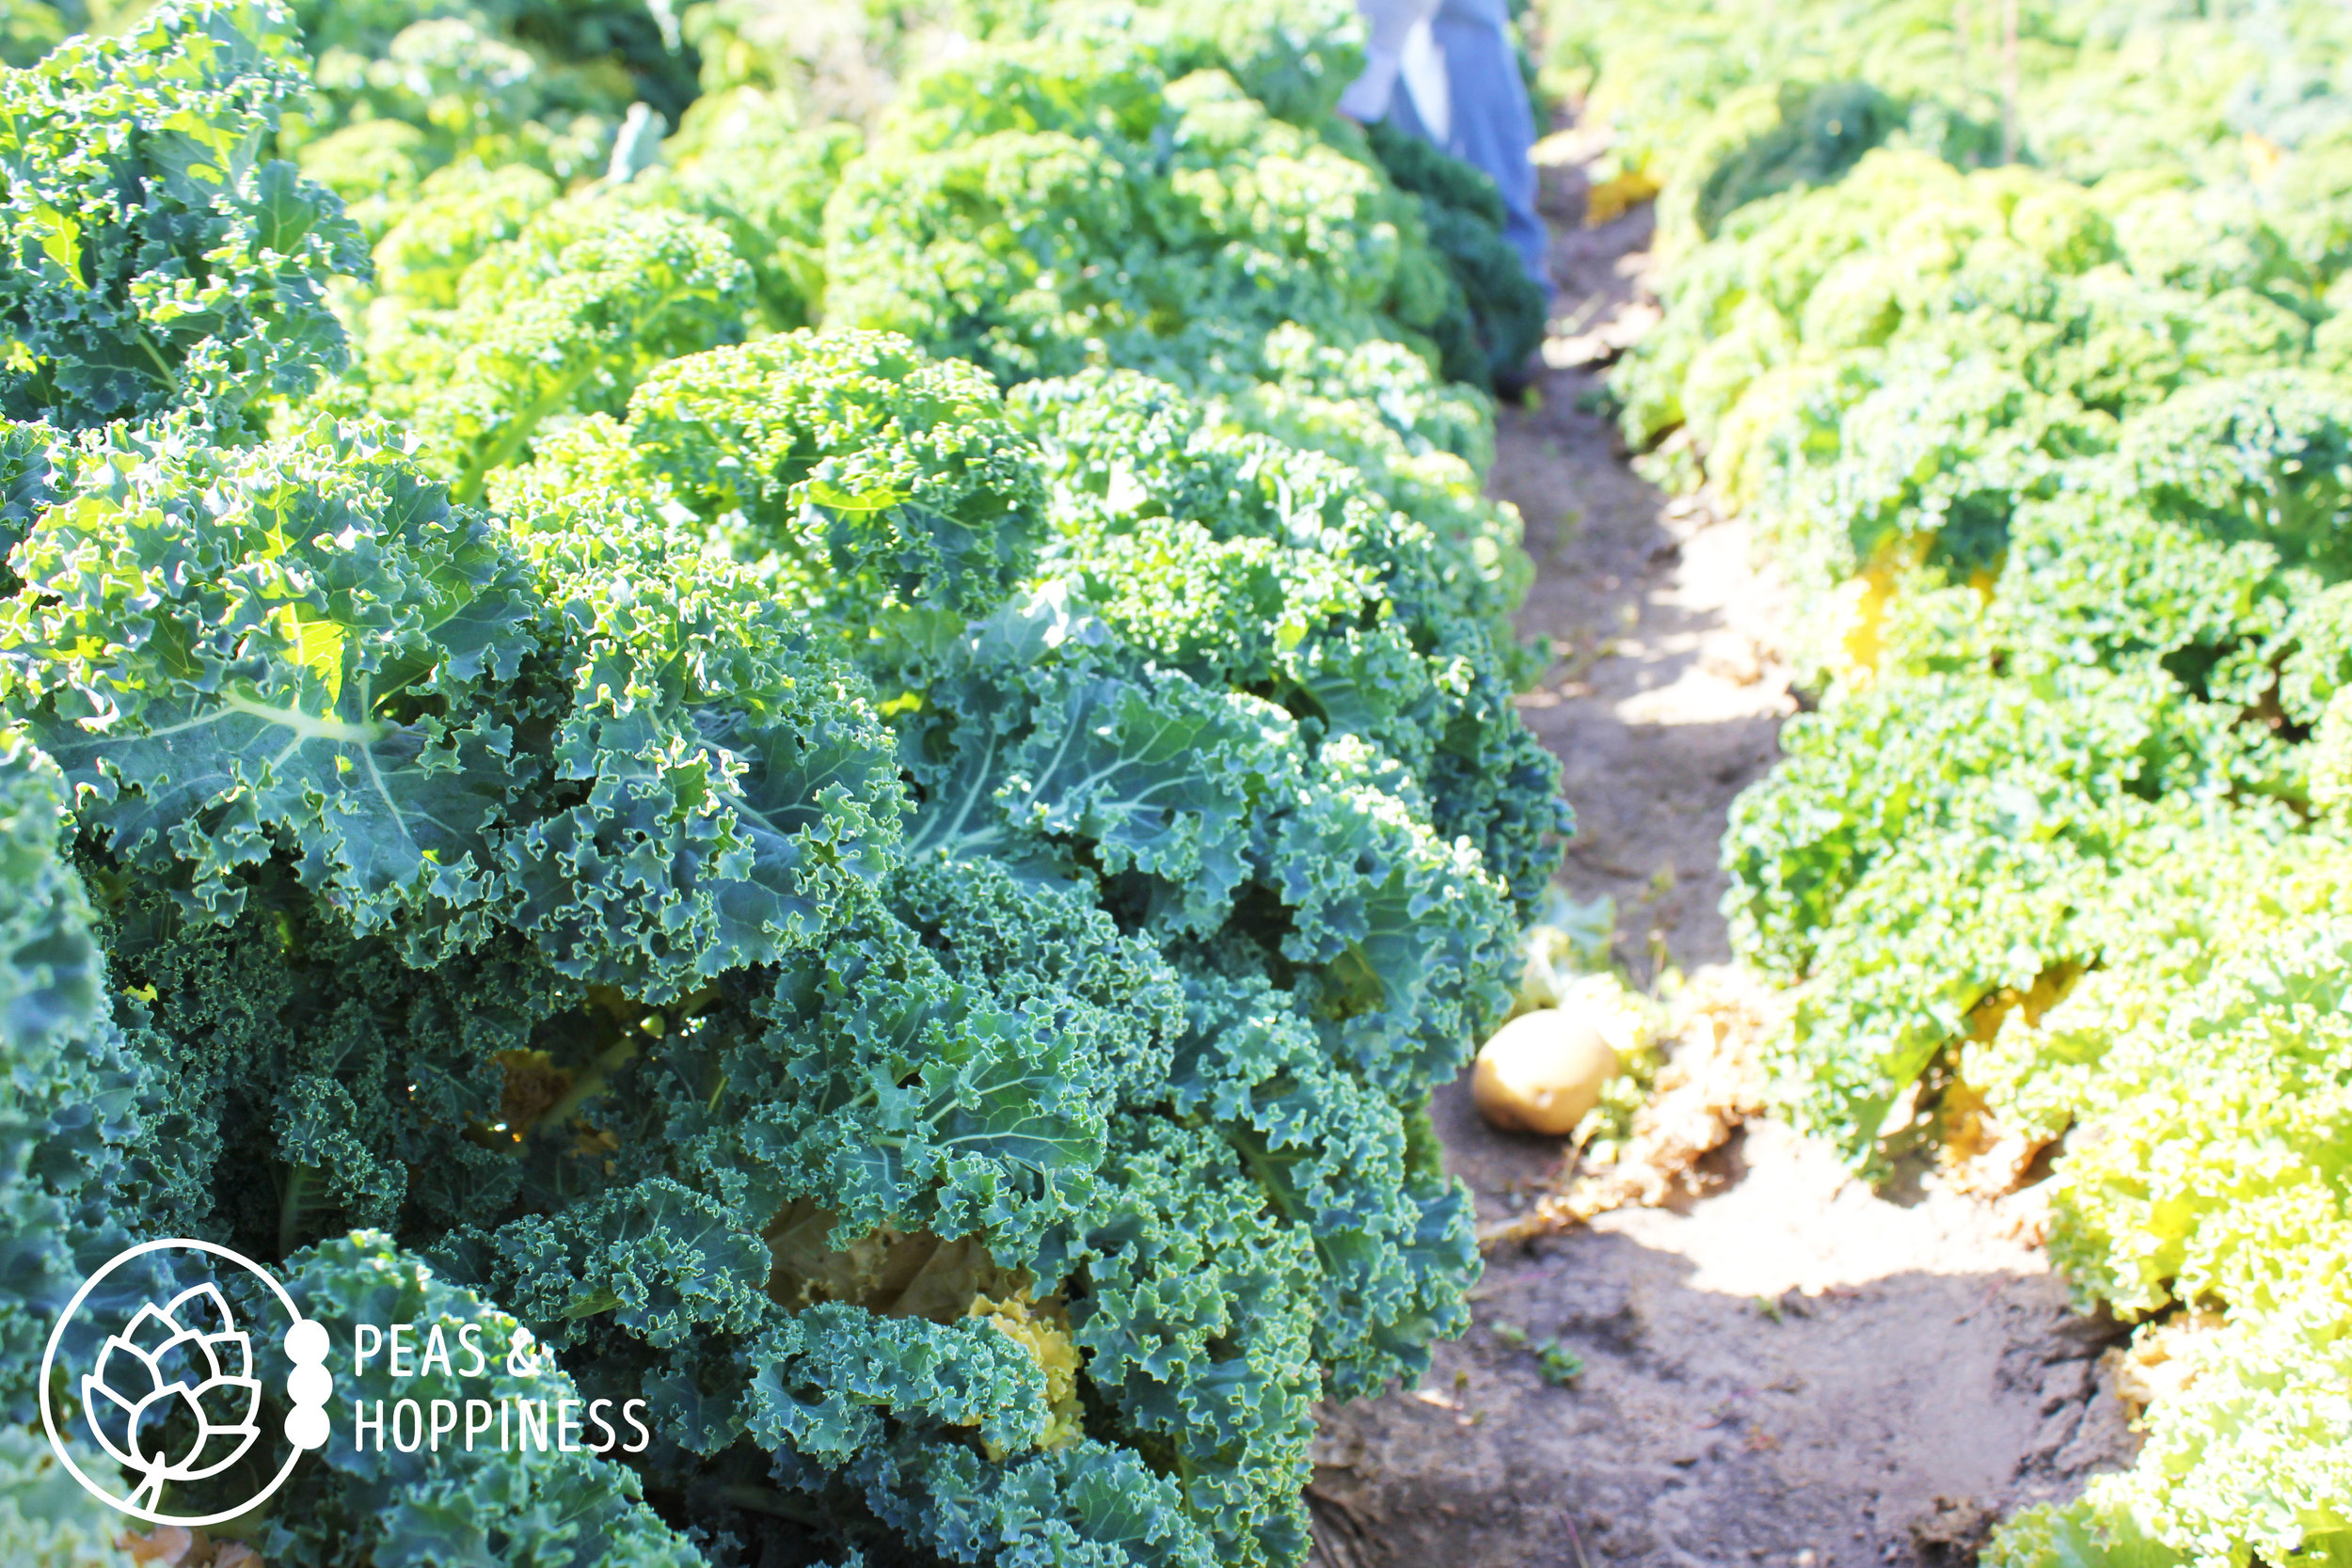 Beautiful kale ready for picking at Miller Farms' Fall Festival